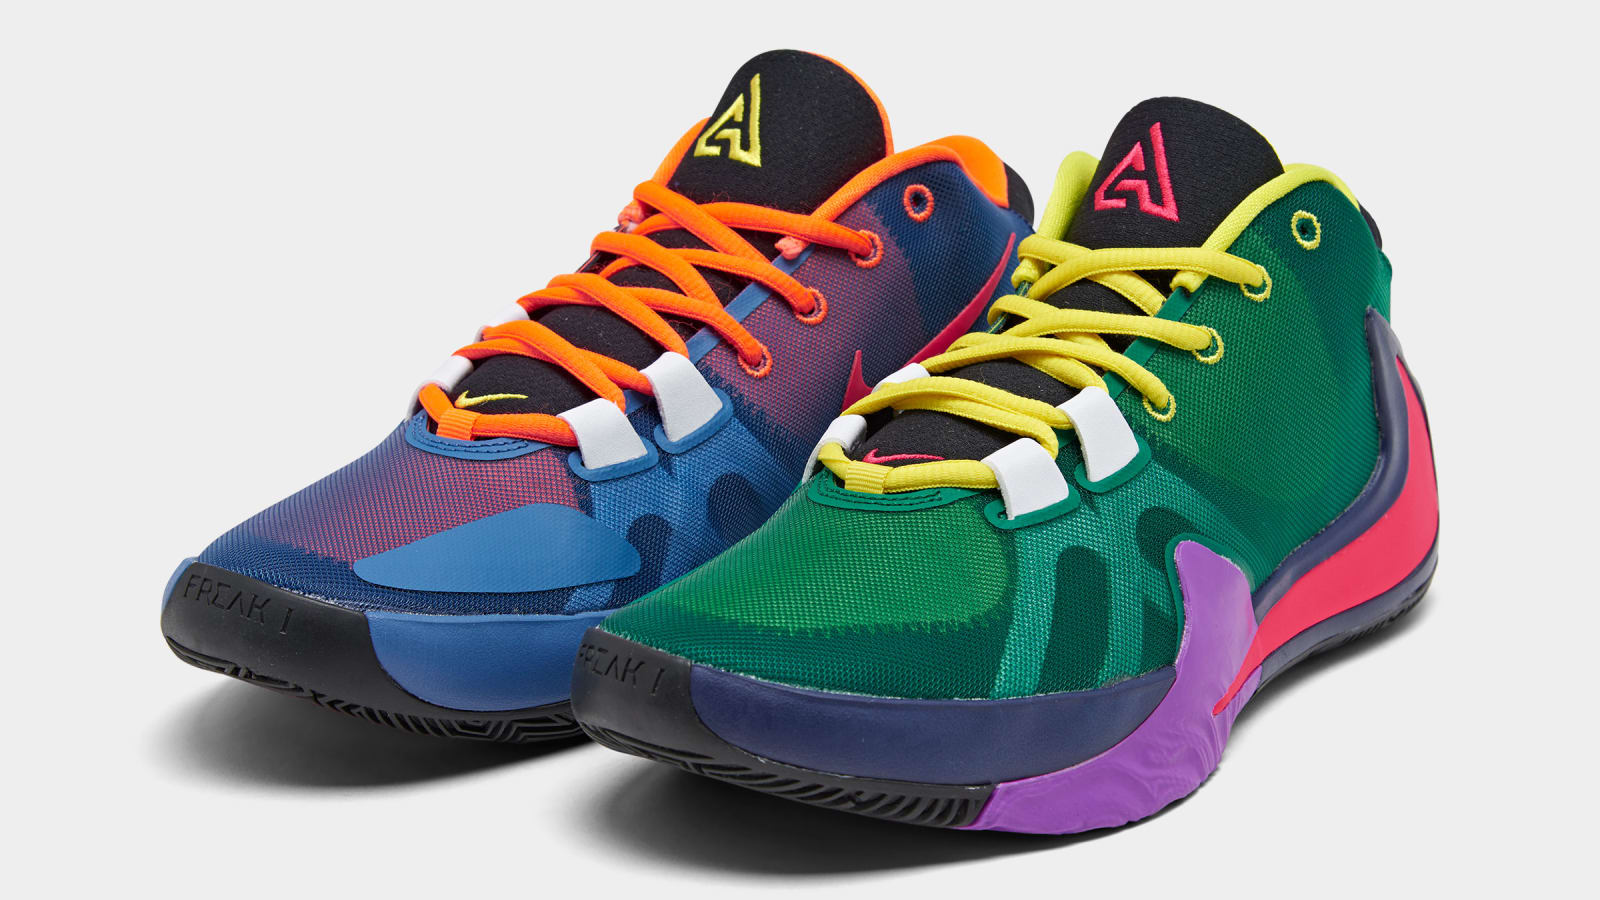 Giannis Antetokounmpo Shoes Nike Off 61 Www Fortissinanli Com